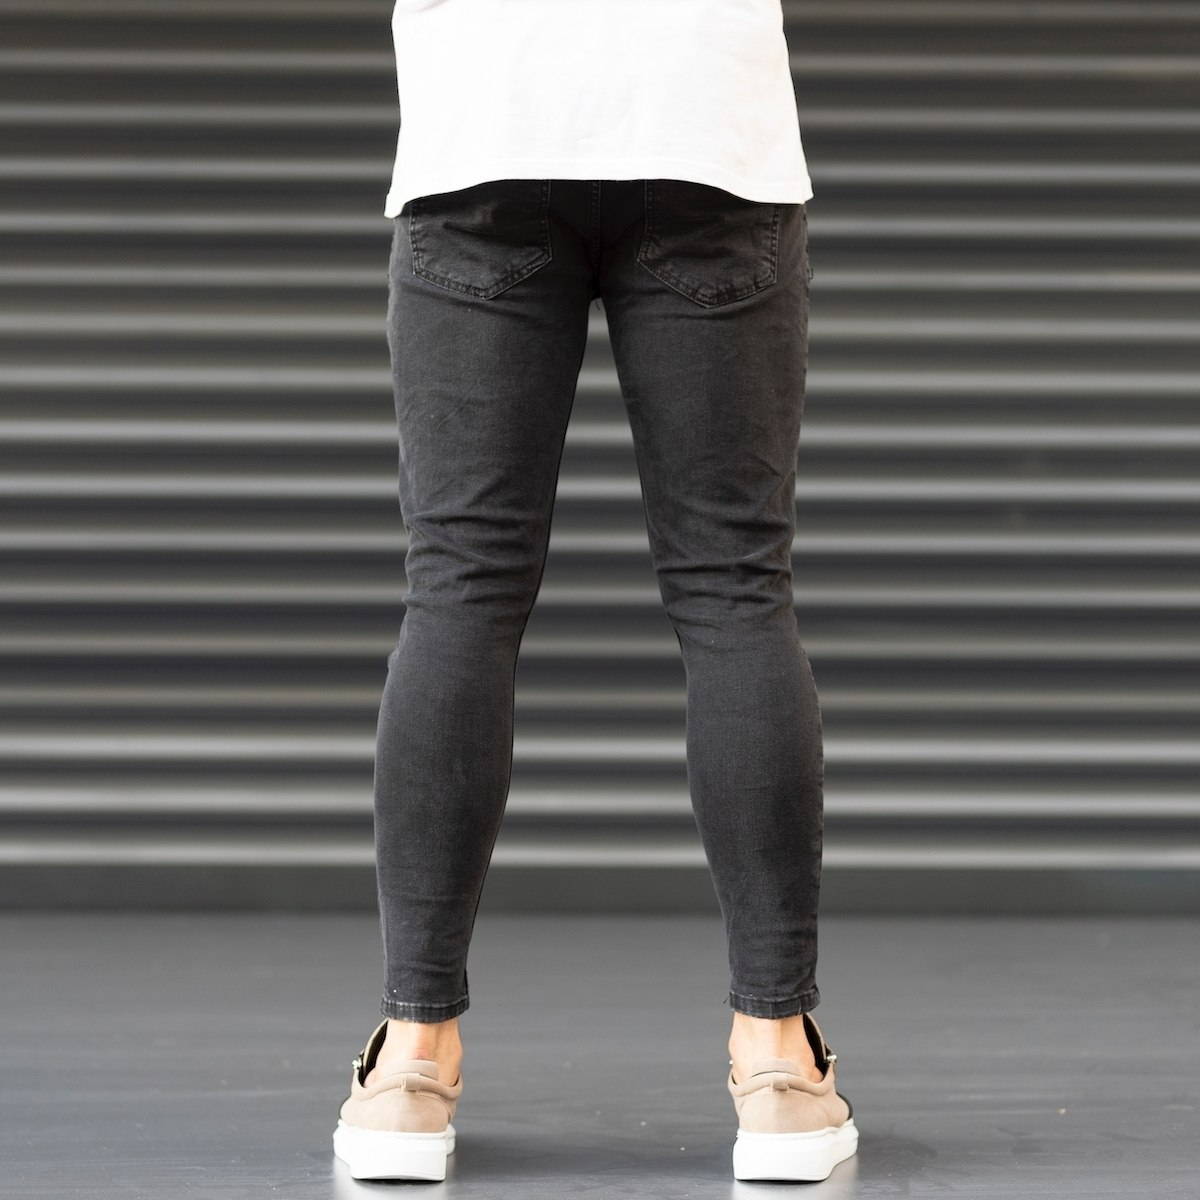 Men's Coho Patchwork Jeans With Heavy Rips In Black Mv Premium Brand - 4